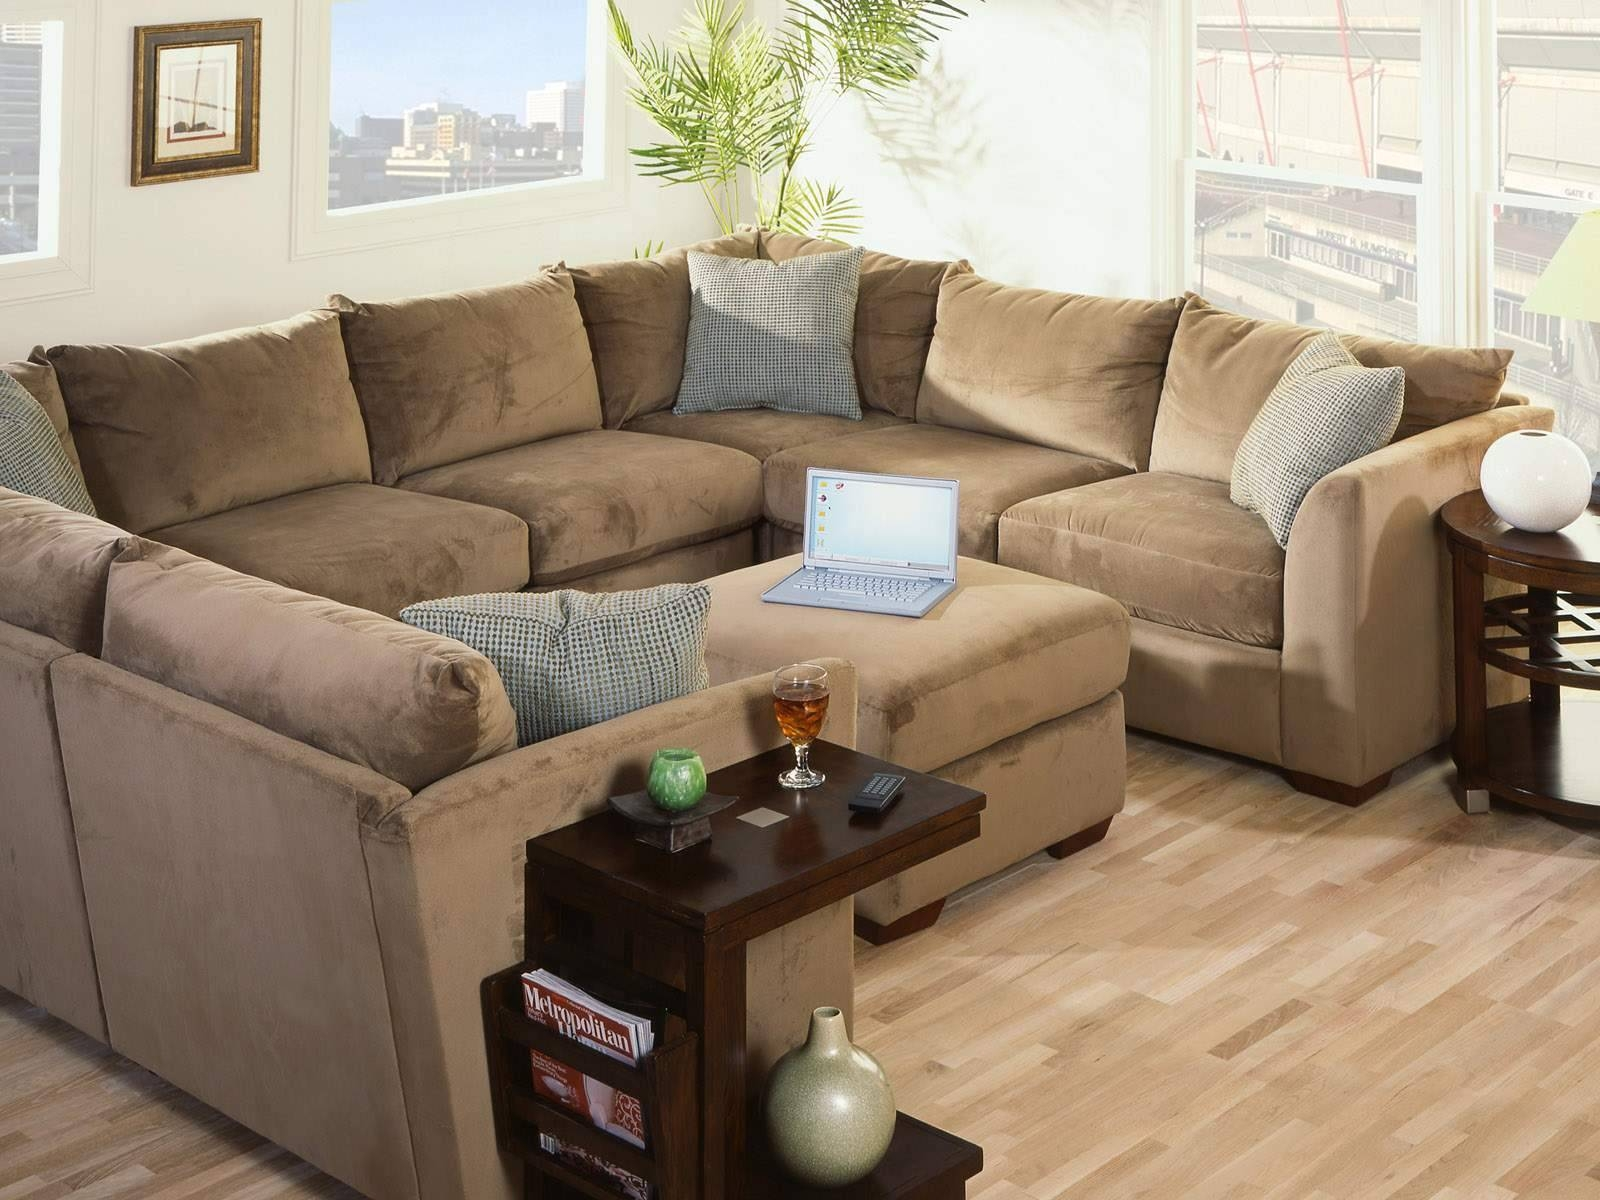 Furniture: Extra Large Sectional Sofa | Oversized Couches | L with Comfy Sectional Sofa (Image 14 of 30)